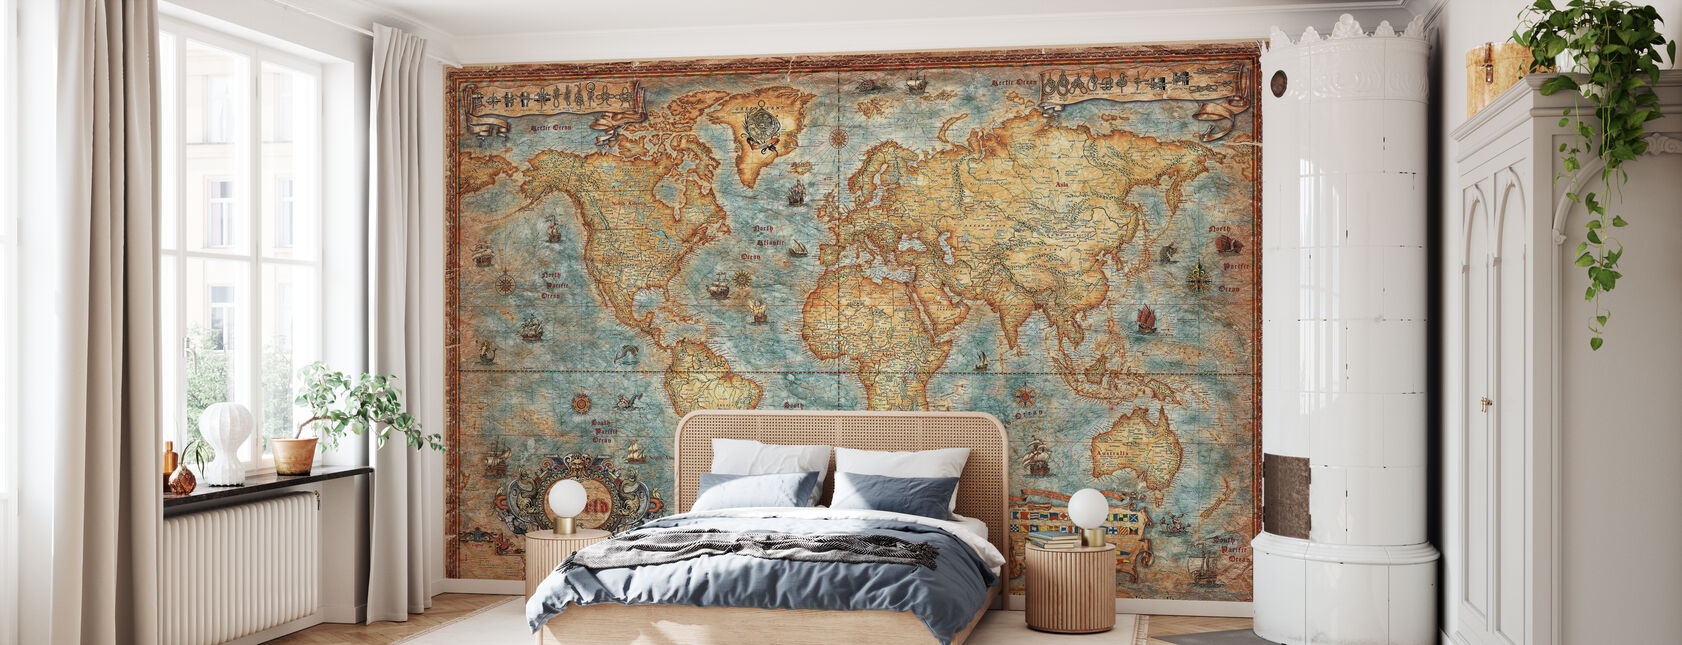 Modern World Antique Map - Wallpaper - Bedroom